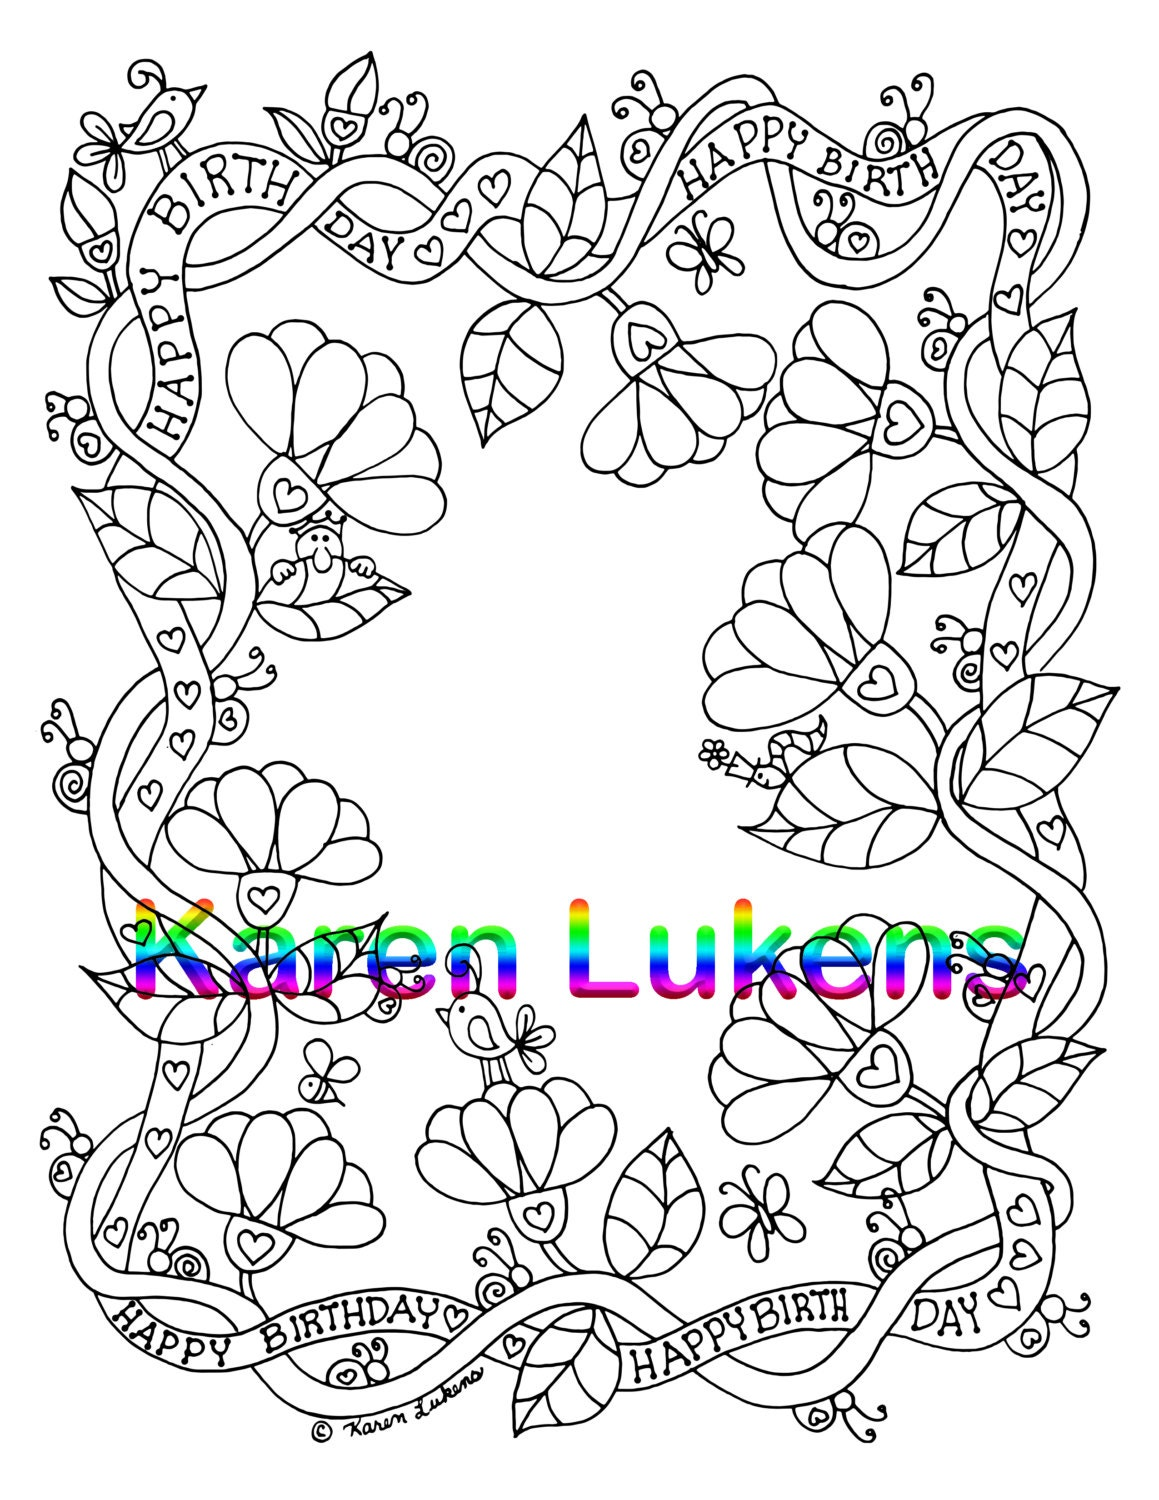 Happy Birthday Flowering Vine 1 Adult Coloring Book Pages Printable Instant Download